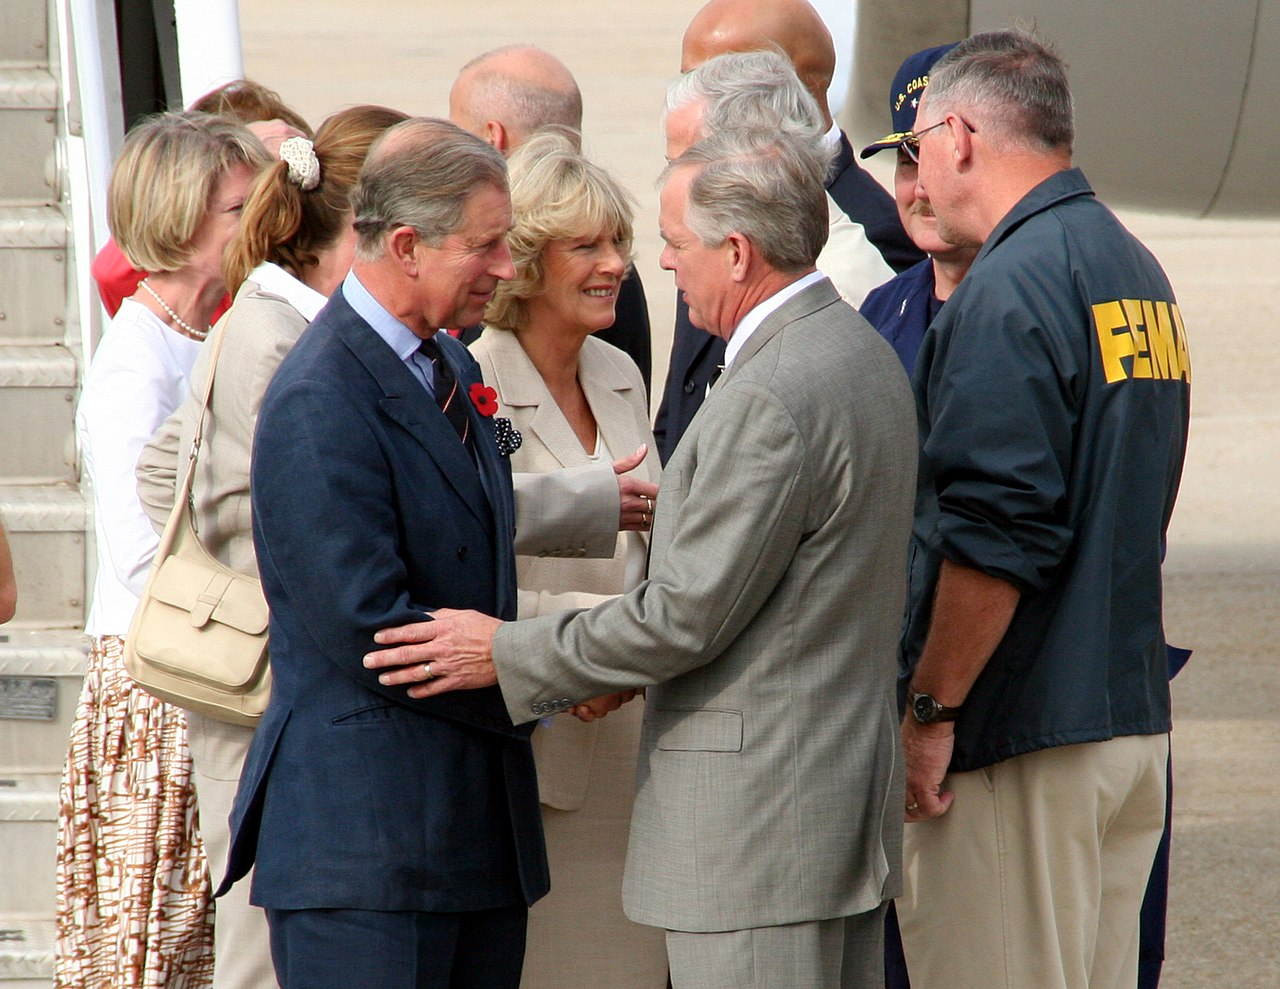 New Orleans, LA, November 4, 2005 - Prince Charles and Camilla greet FEMA officials as they arrive to tour the damages created by Hurricane Katrina in New Orleans.  Robert Kaufmann/FEMA